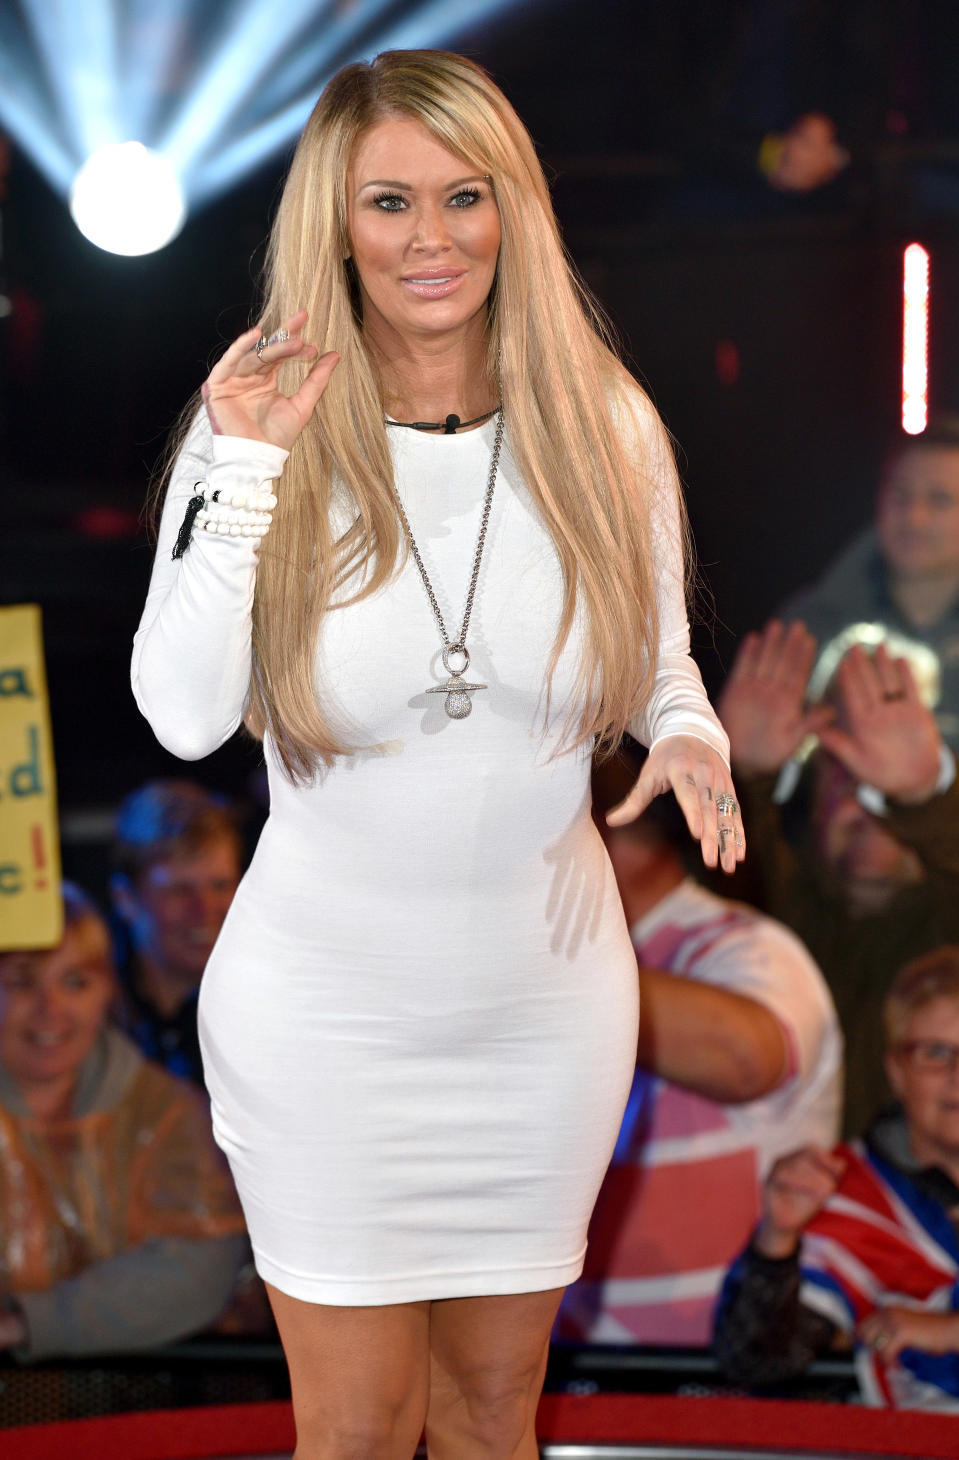 Retired adult film star Jenna Jameson, pictured in 2015, has opened up about her struggle to lose weight after she had her daughter last year. (Photo: Karwai Tang/WireImage)